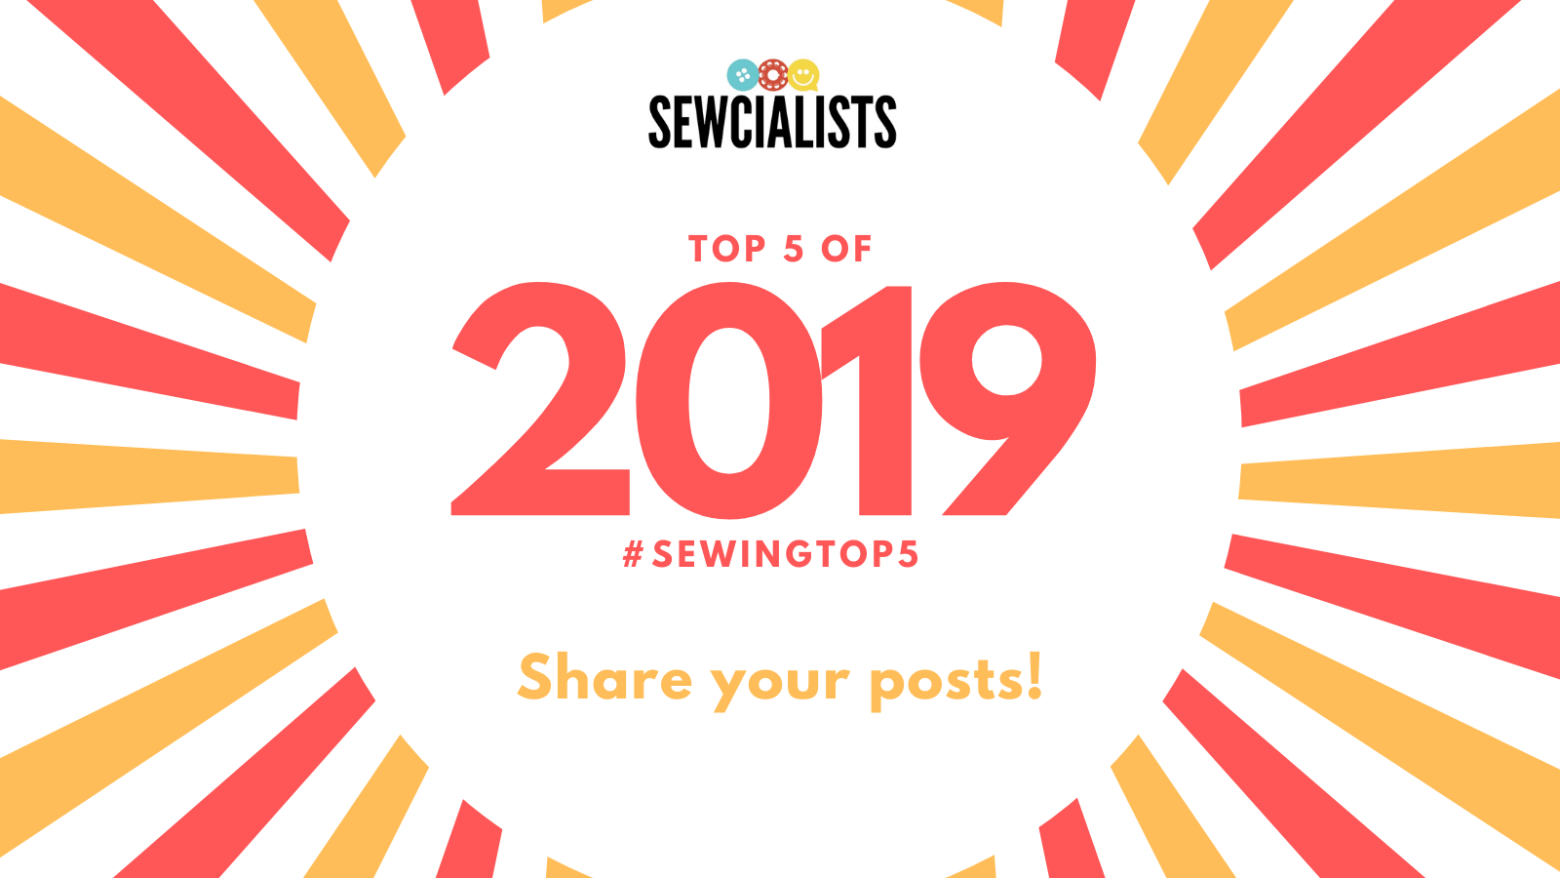 #SewingTop5